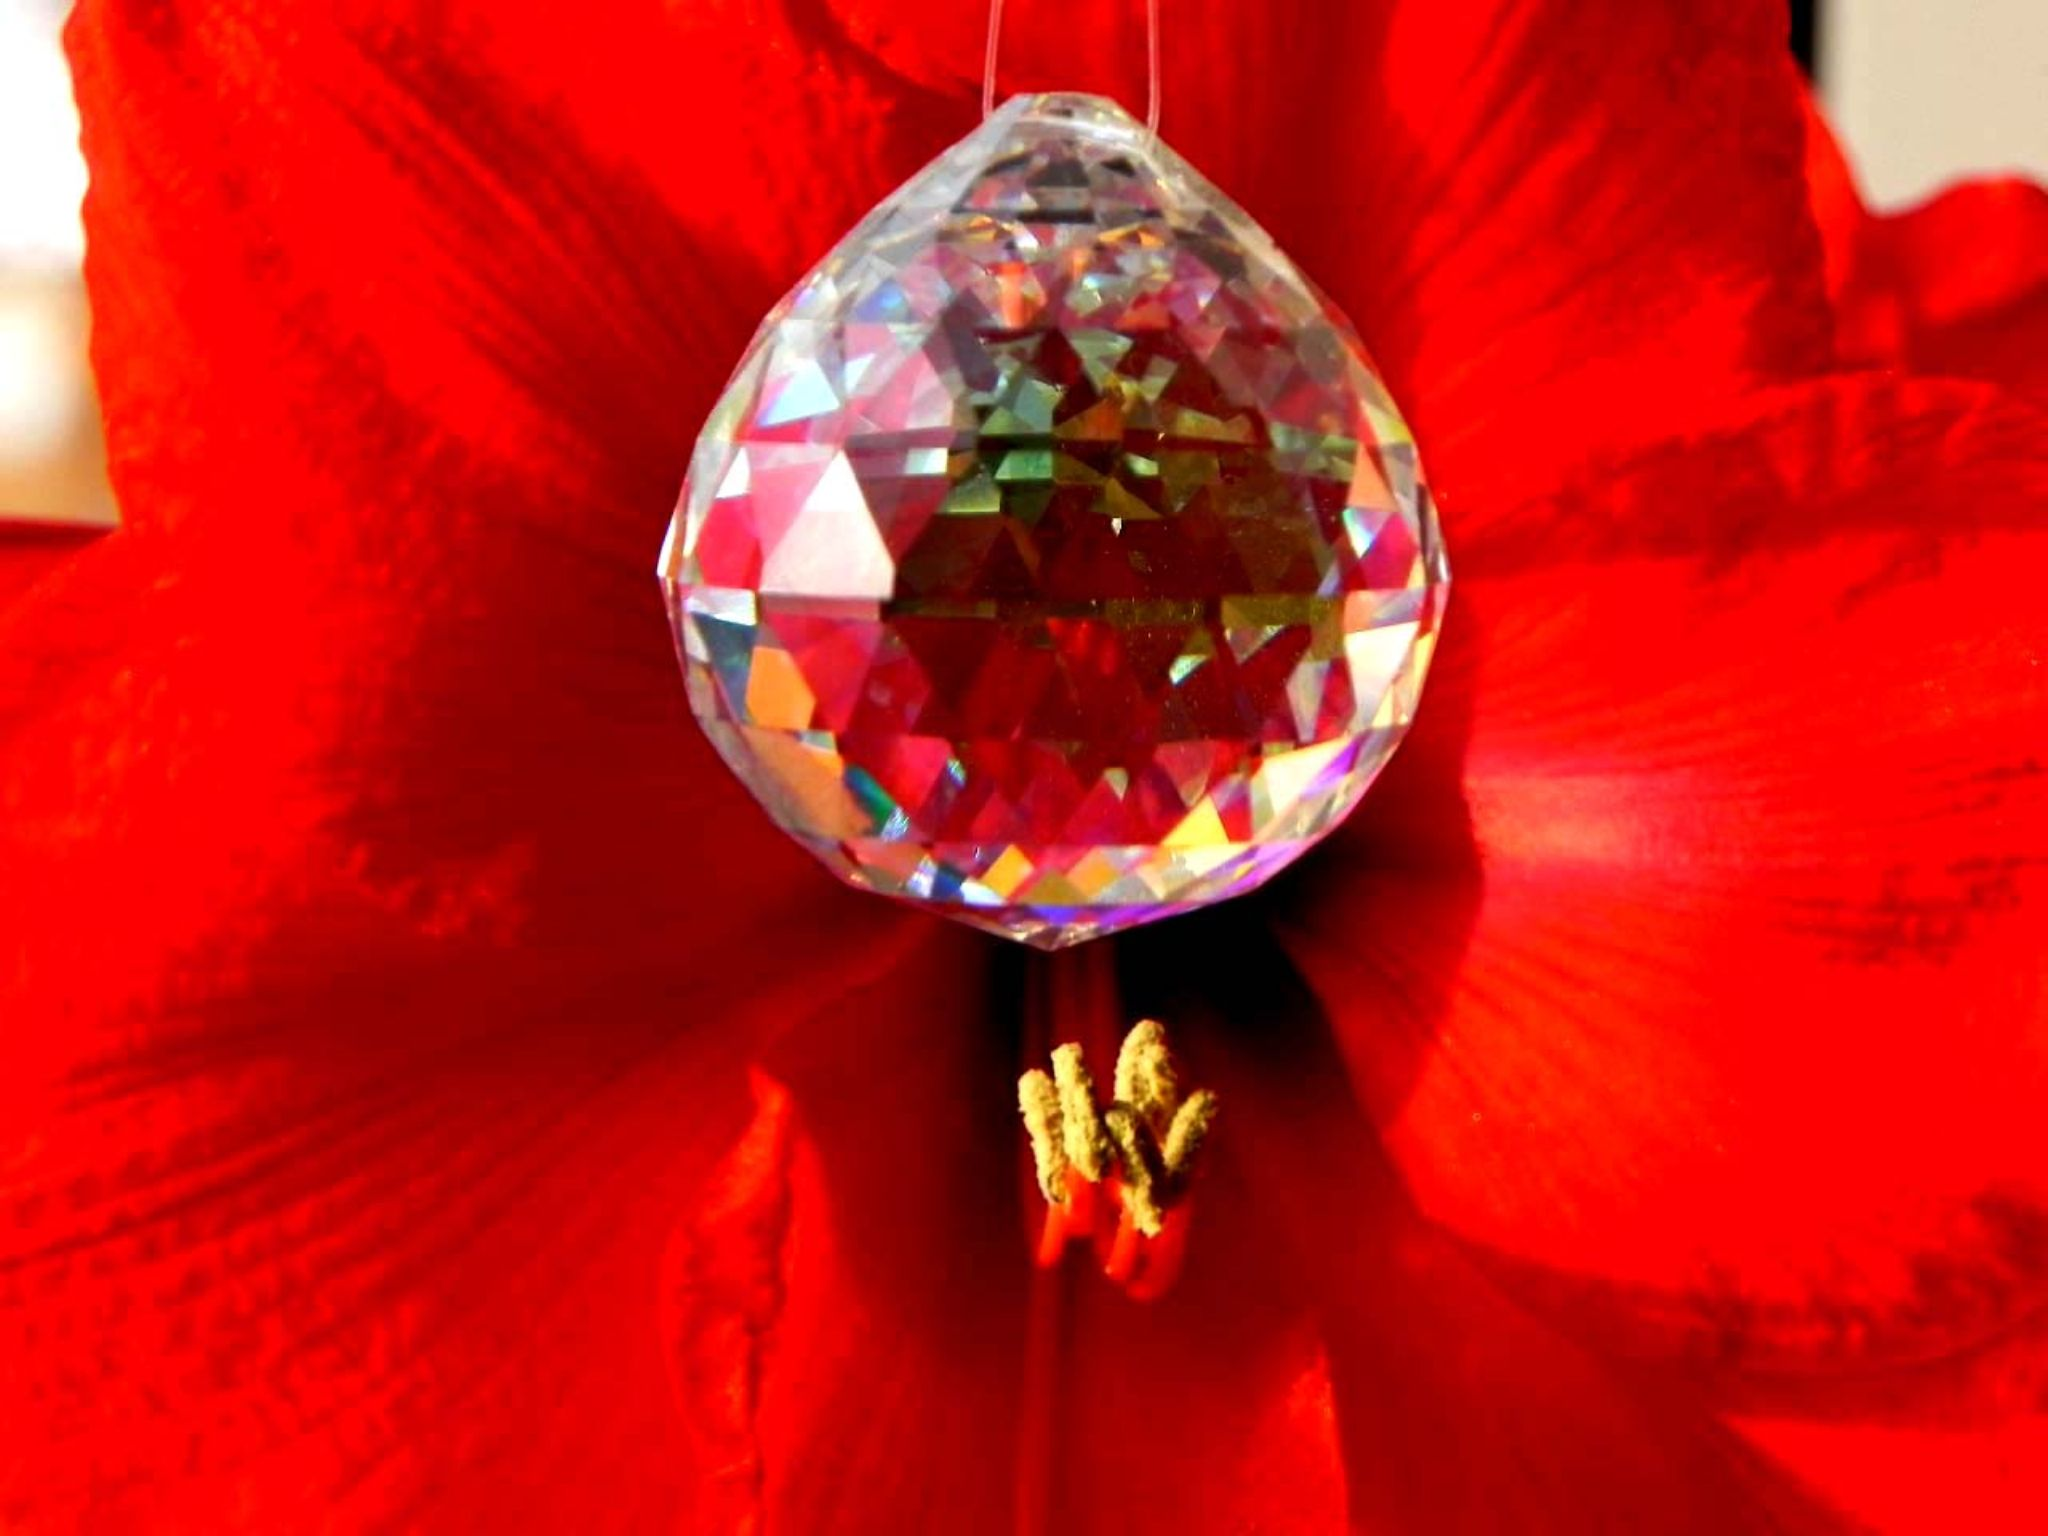 Flower with cristal by christopher.kerkovius